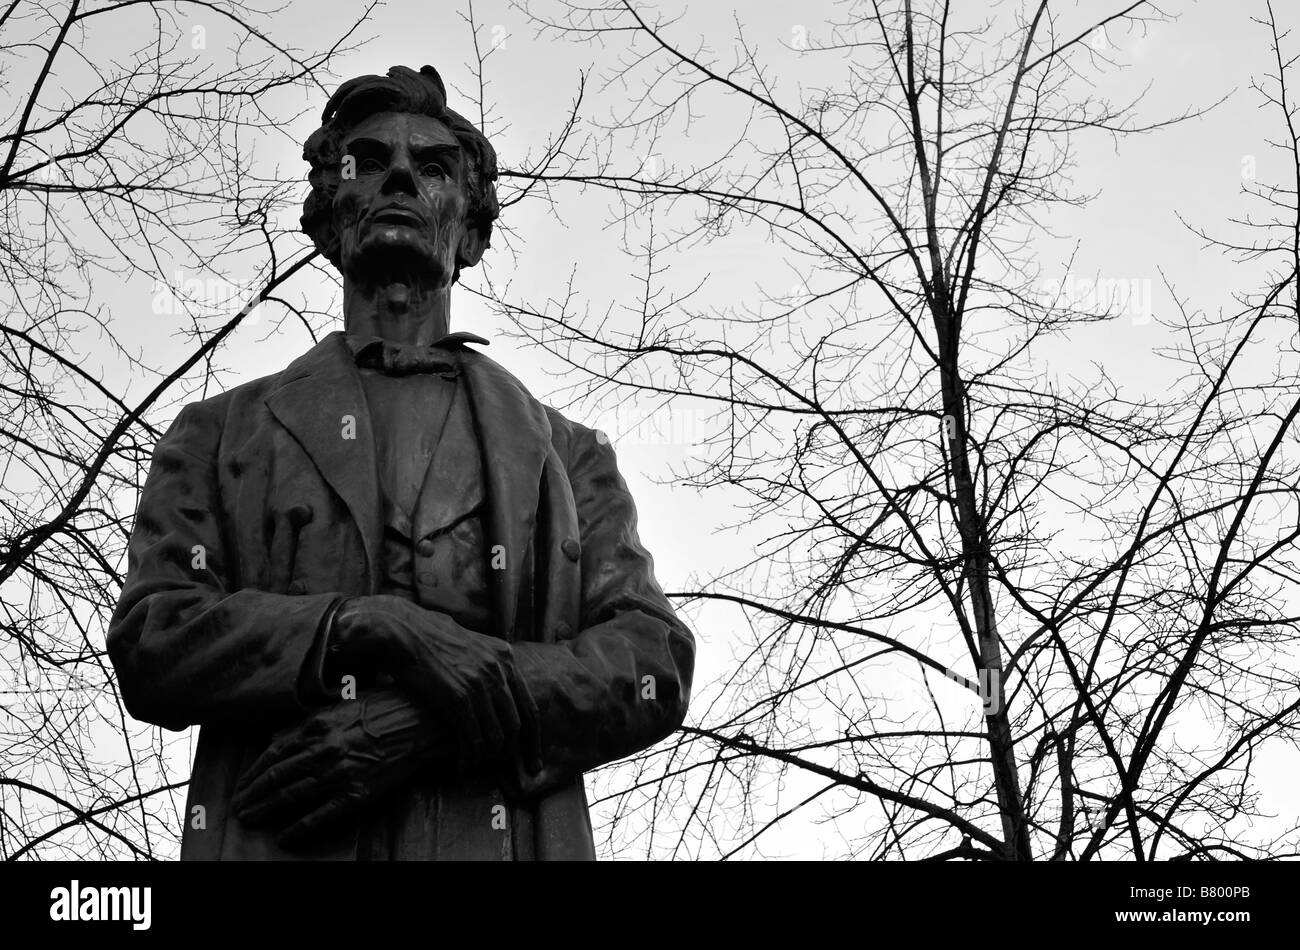 abraham lincoln american president statue manchester uk england monochrome black and white USA - Stock Image